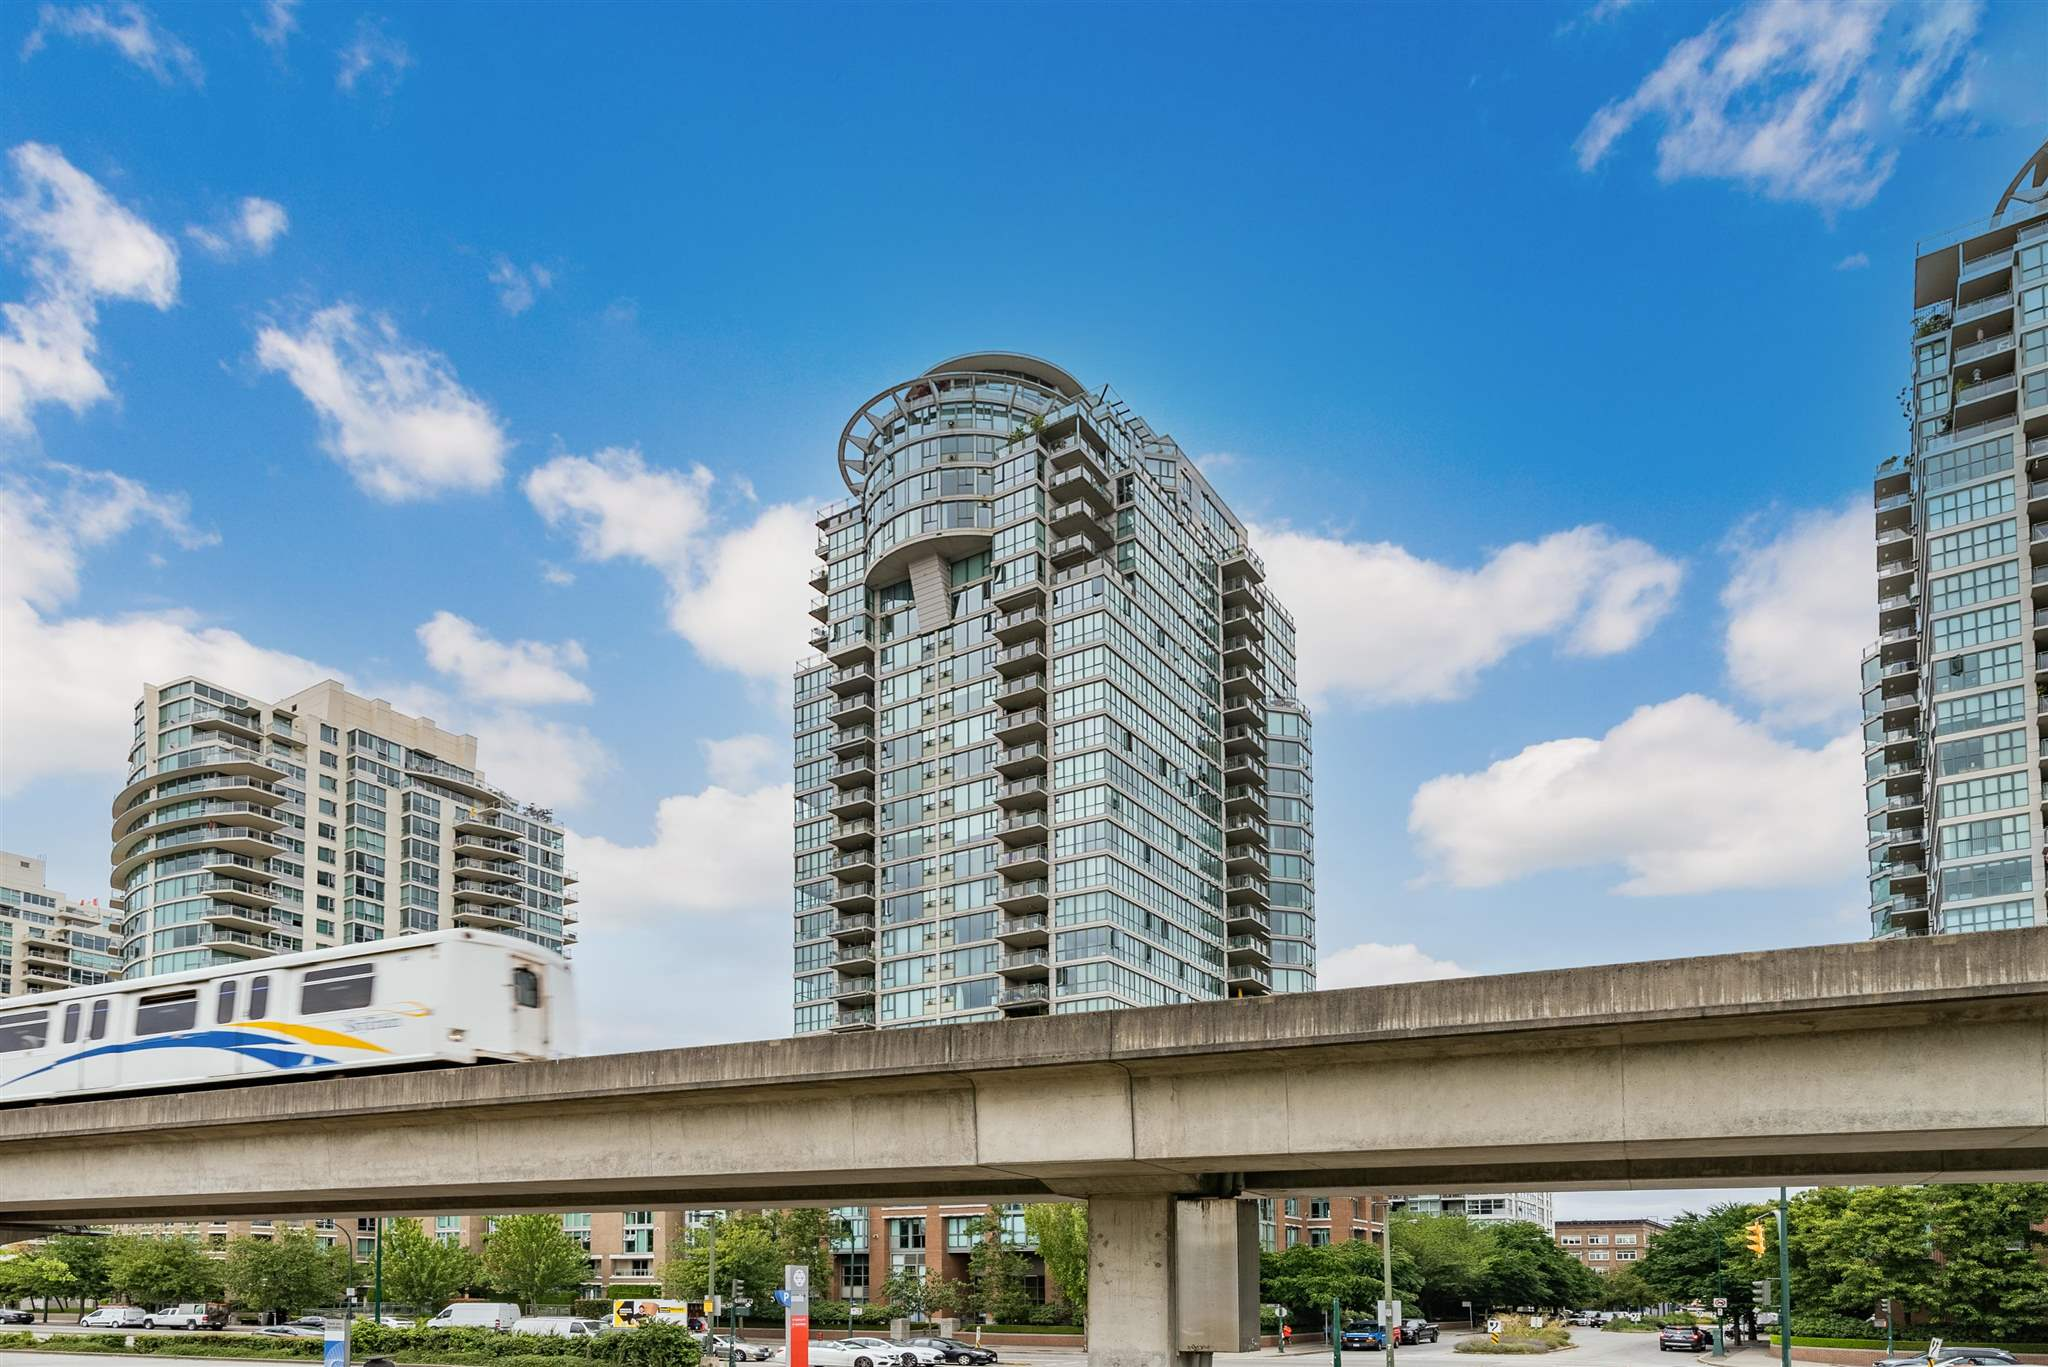 1903 1088 QUEBEC STREET - Downtown VE Apartment/Condo for sale, 2 Bedrooms (R2603300) - #1